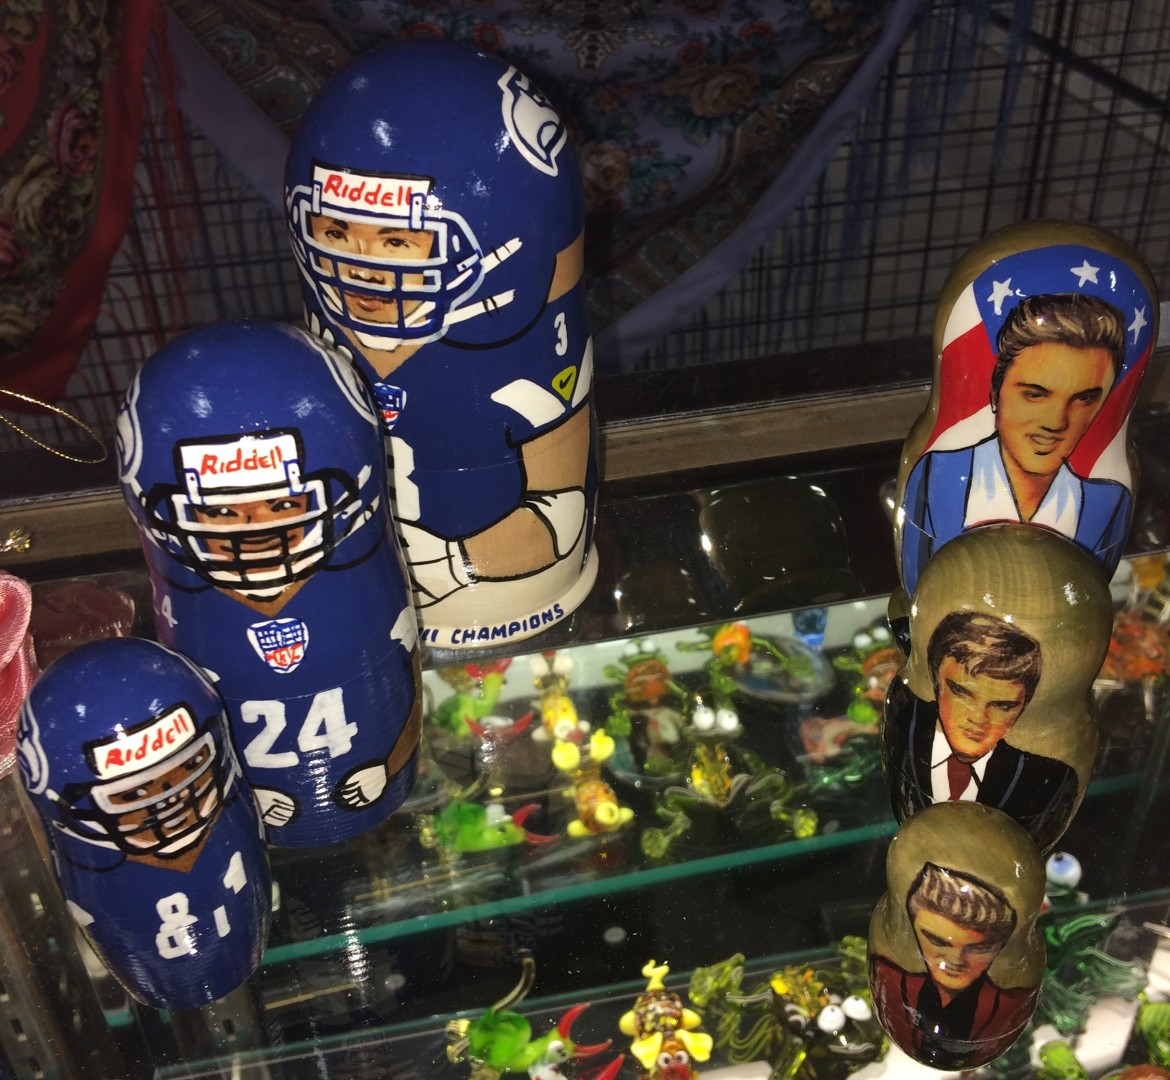 Russian-style petrushka dolls football players Elvis Presley